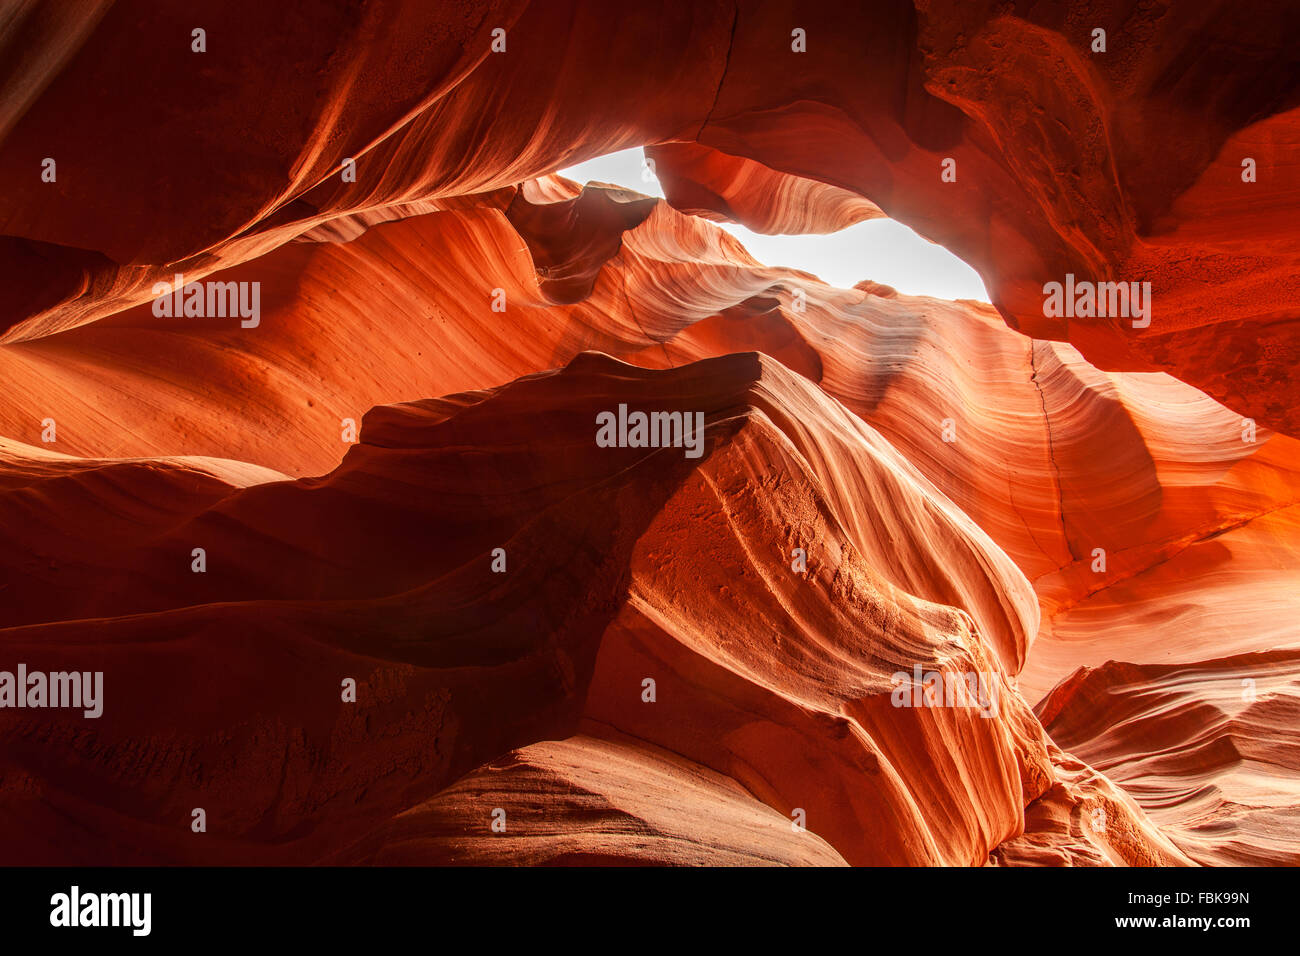 The Howling Wolf rock at Upper Antelope Canyon, Page, Arizona - Stock Image